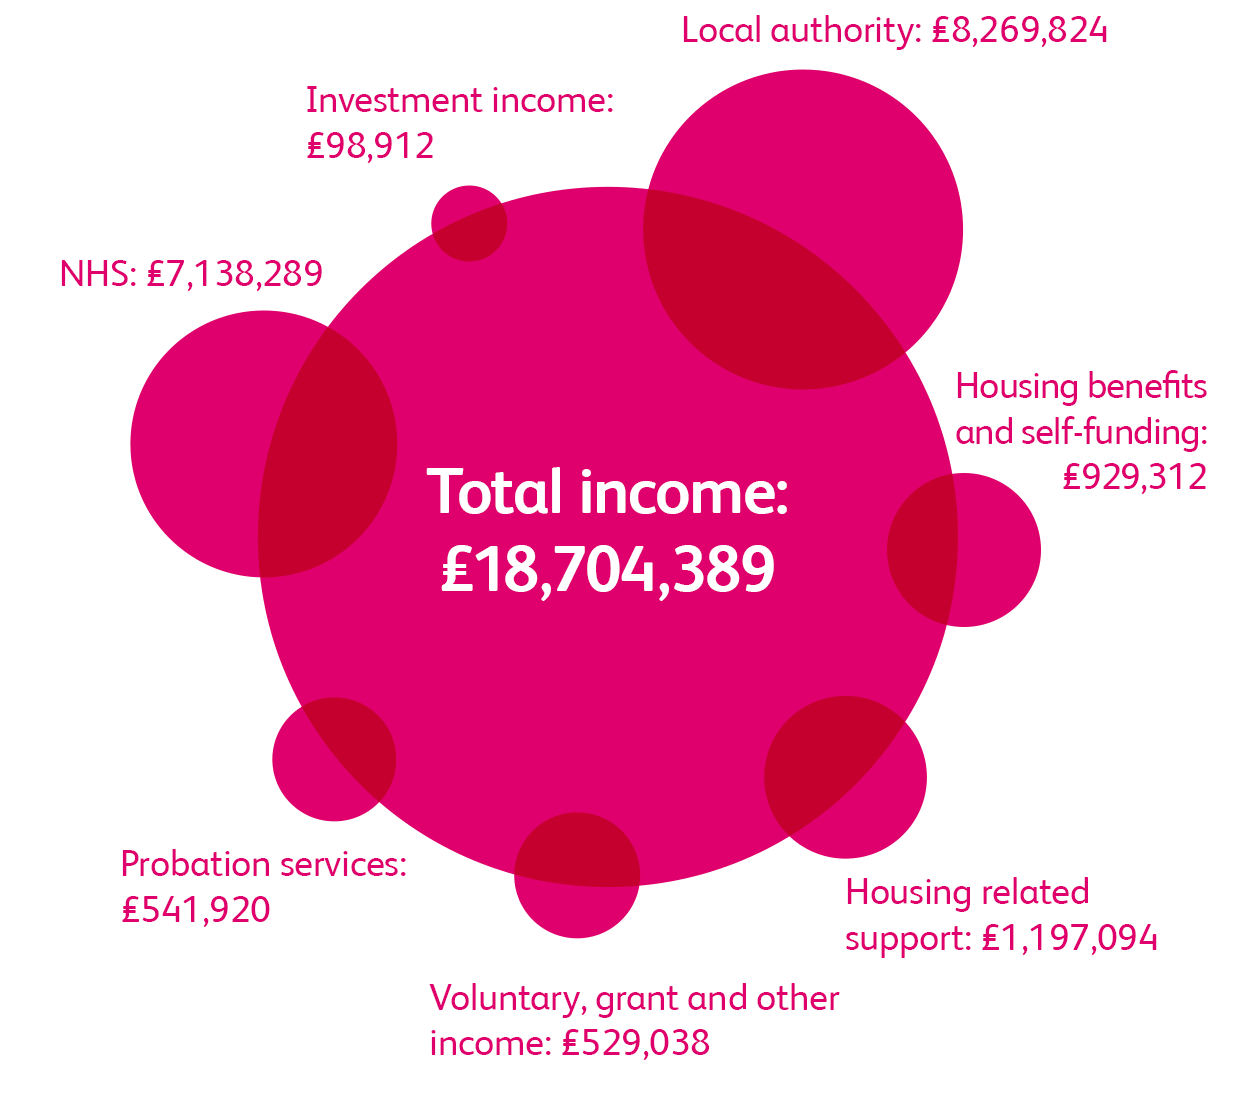 Infographic displaying income details for Together